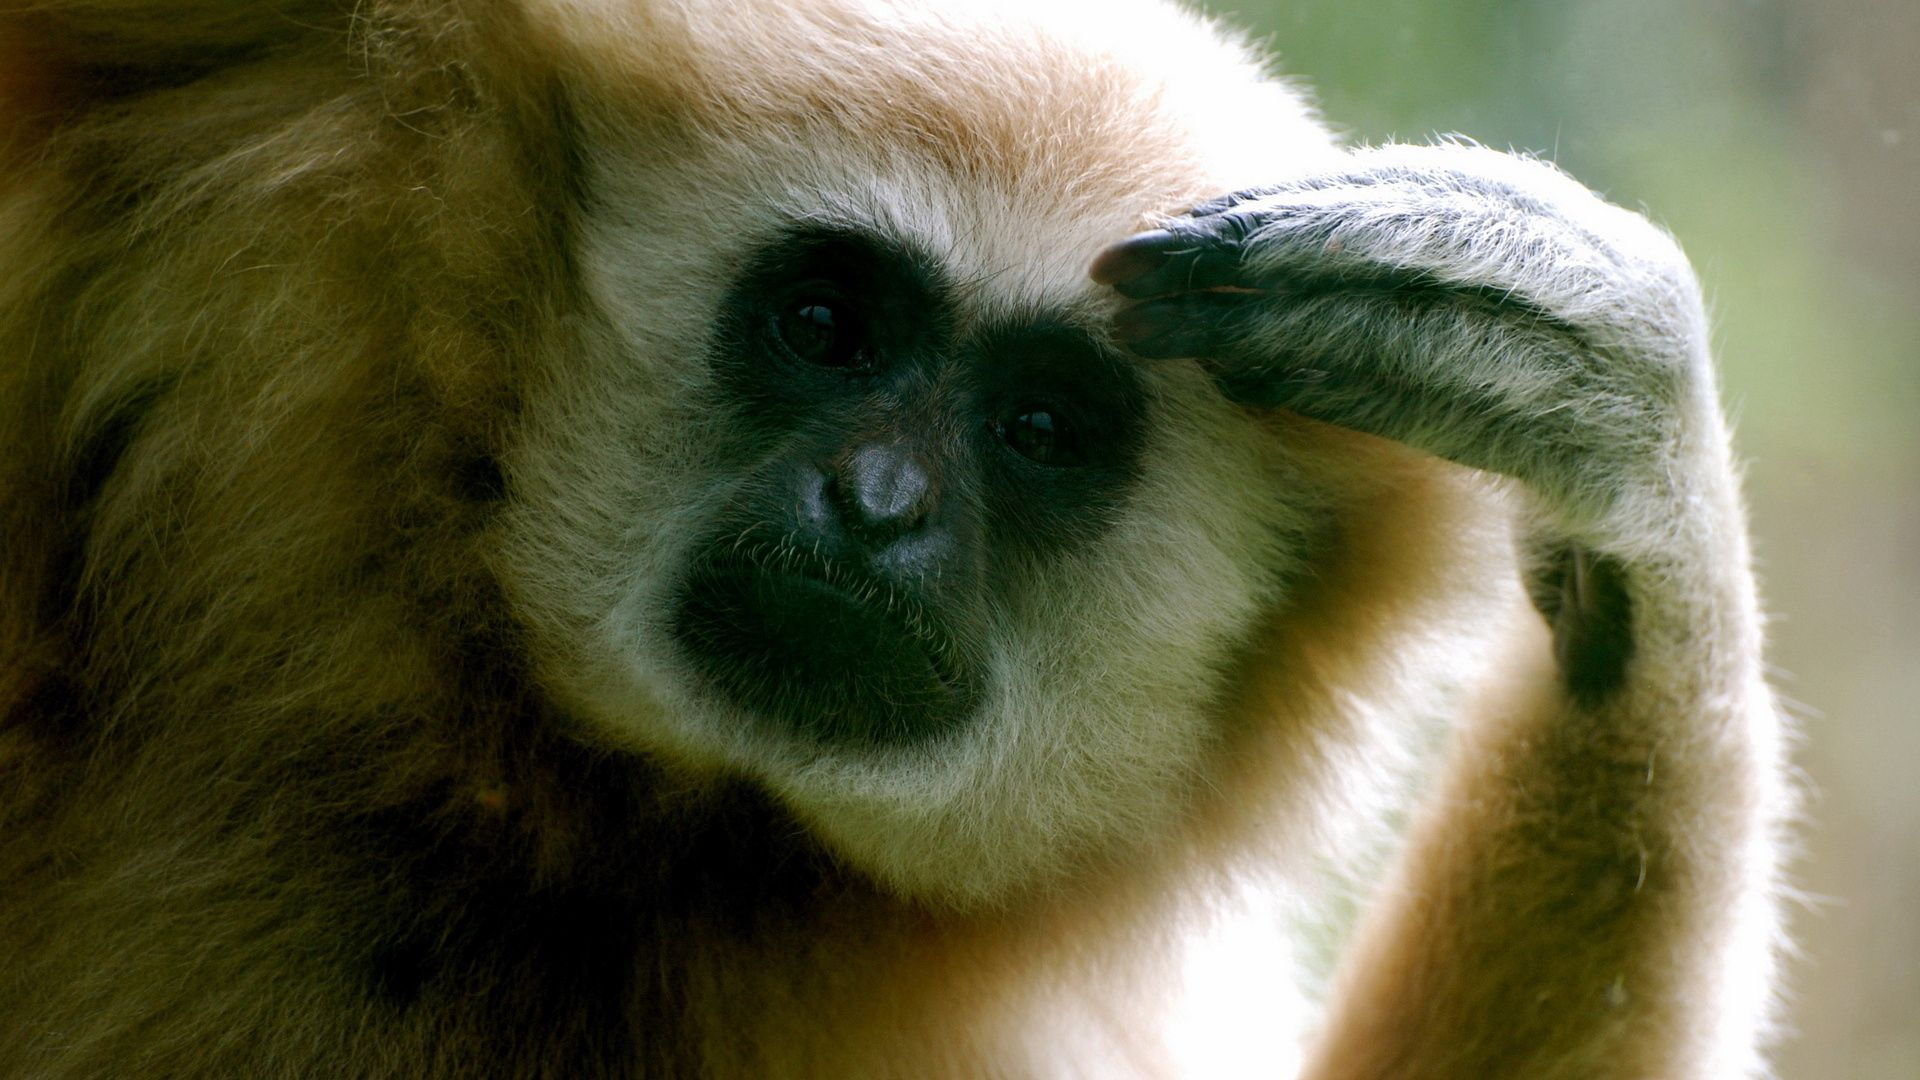 102972 download wallpaper Animals, Monkey, Thinks, Paw screensavers and pictures for free